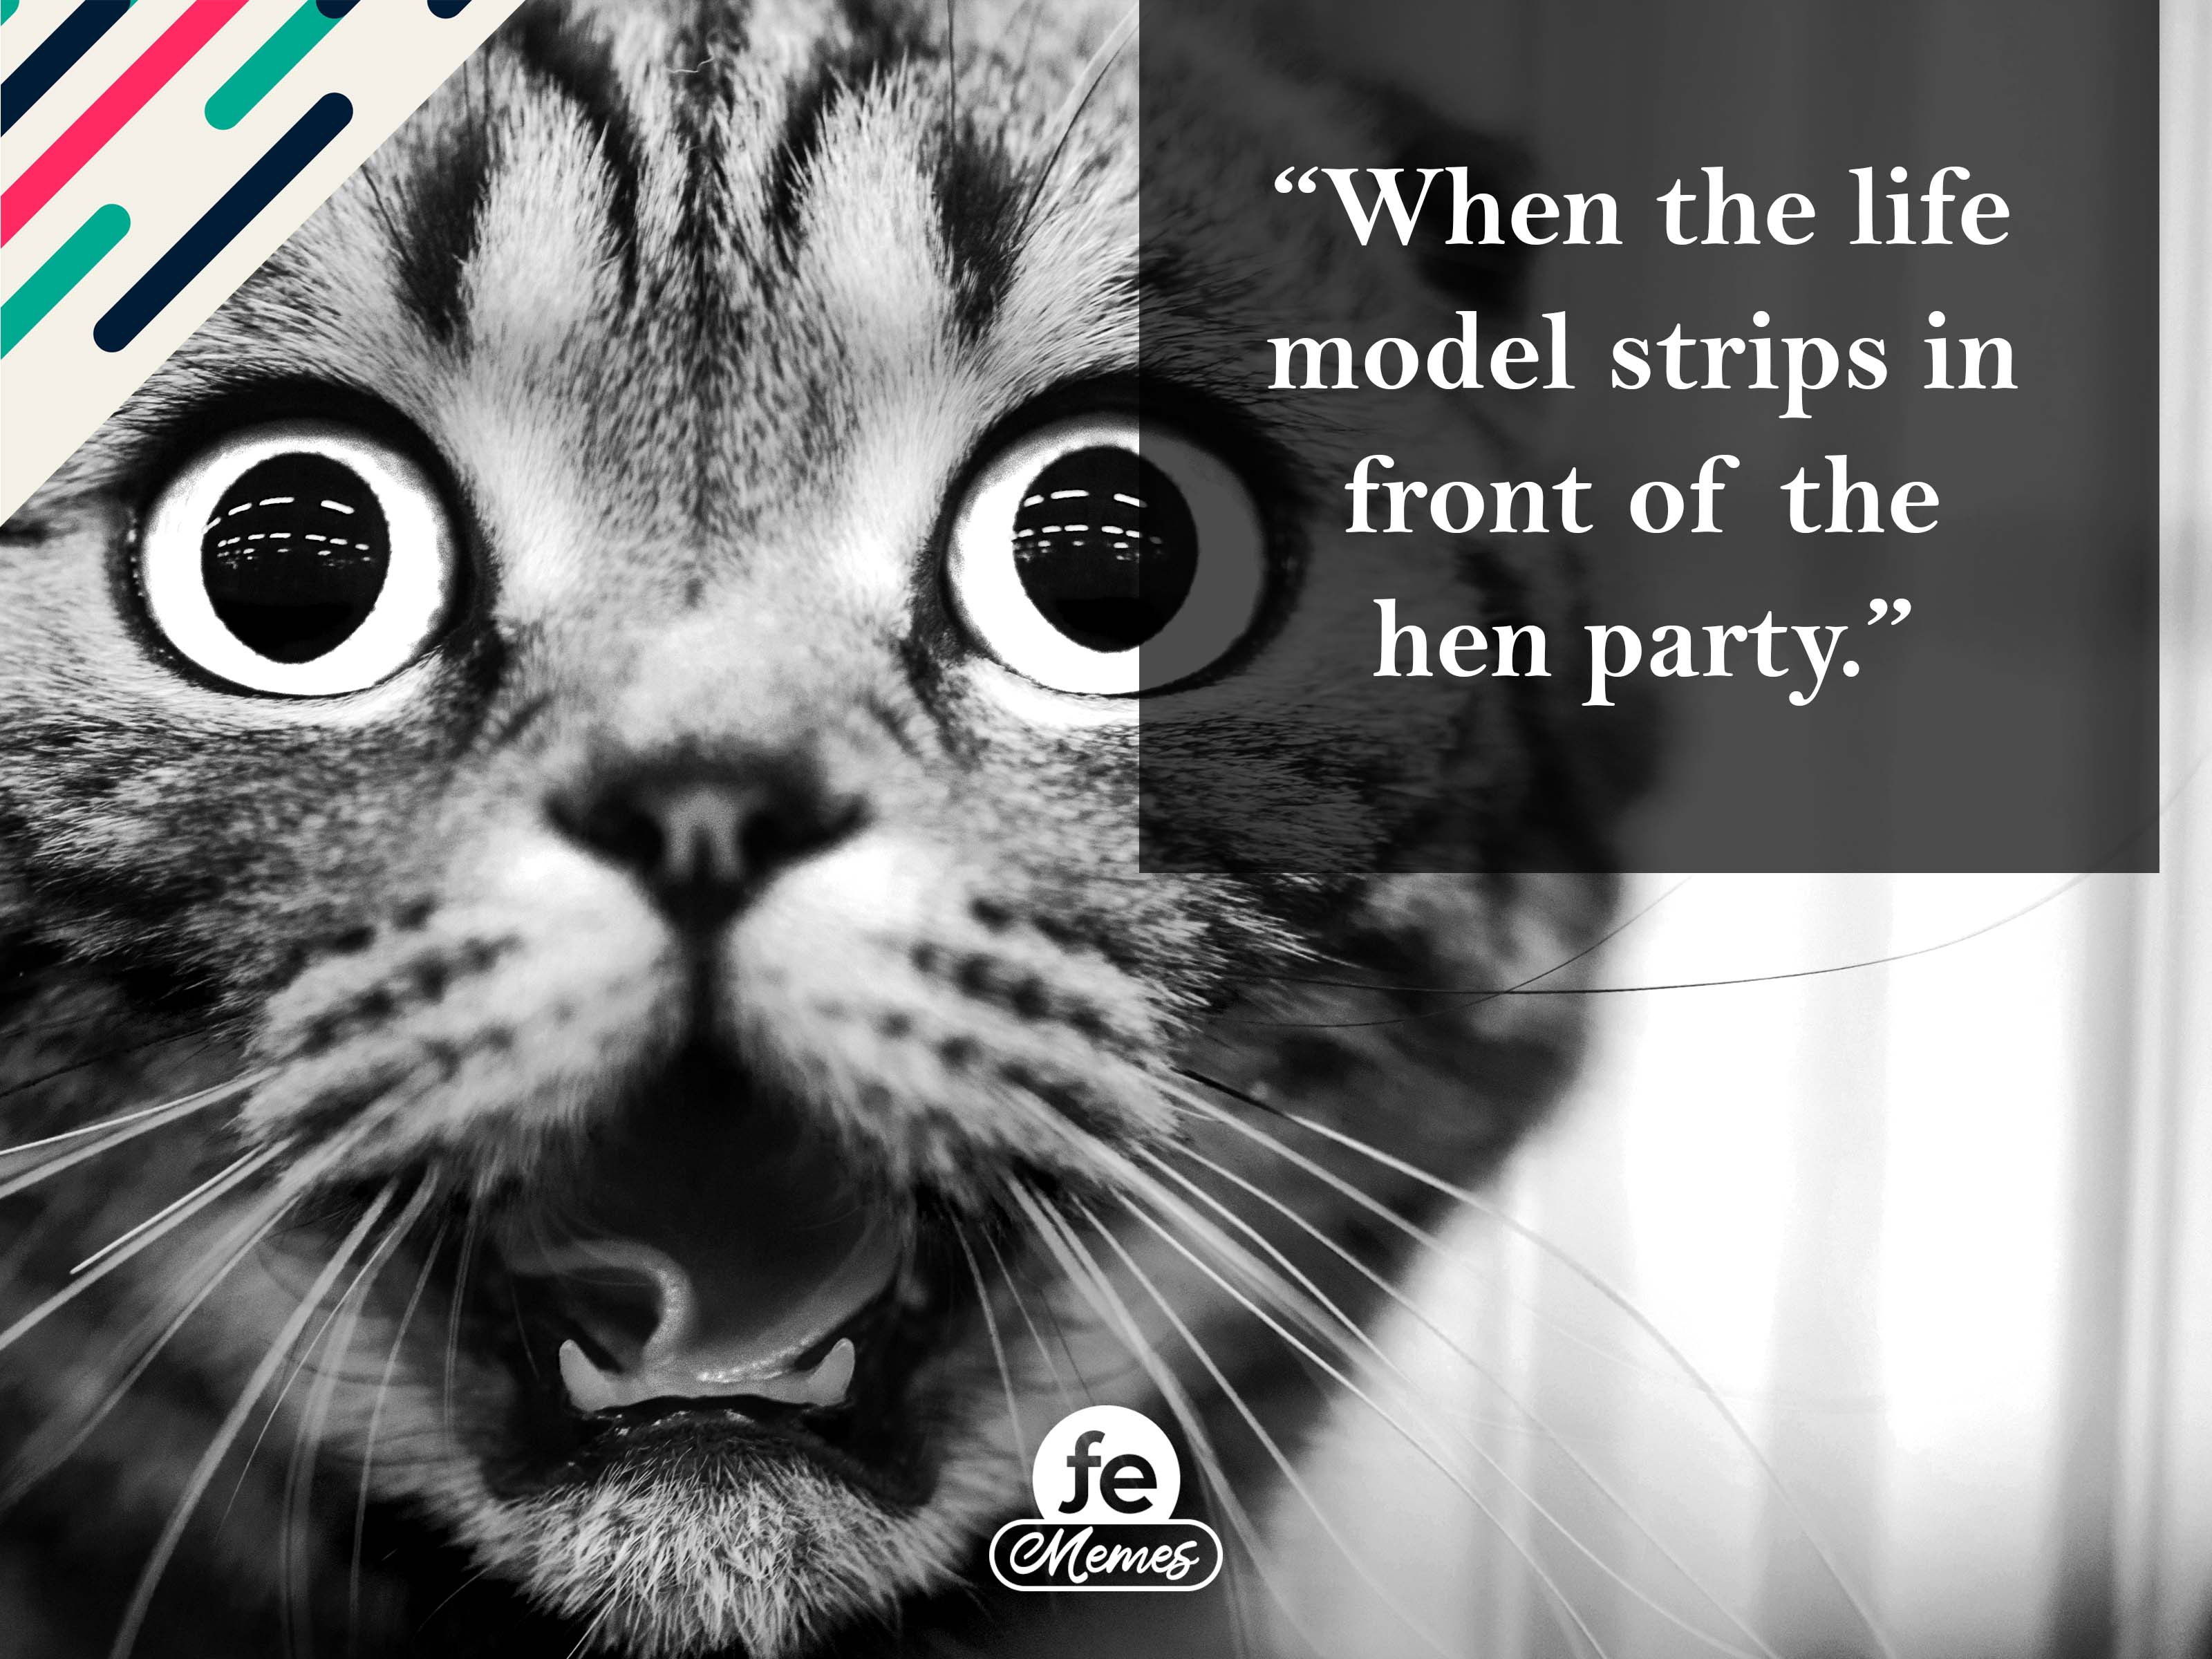 When the life model strips in front of the hen party - Meme 10